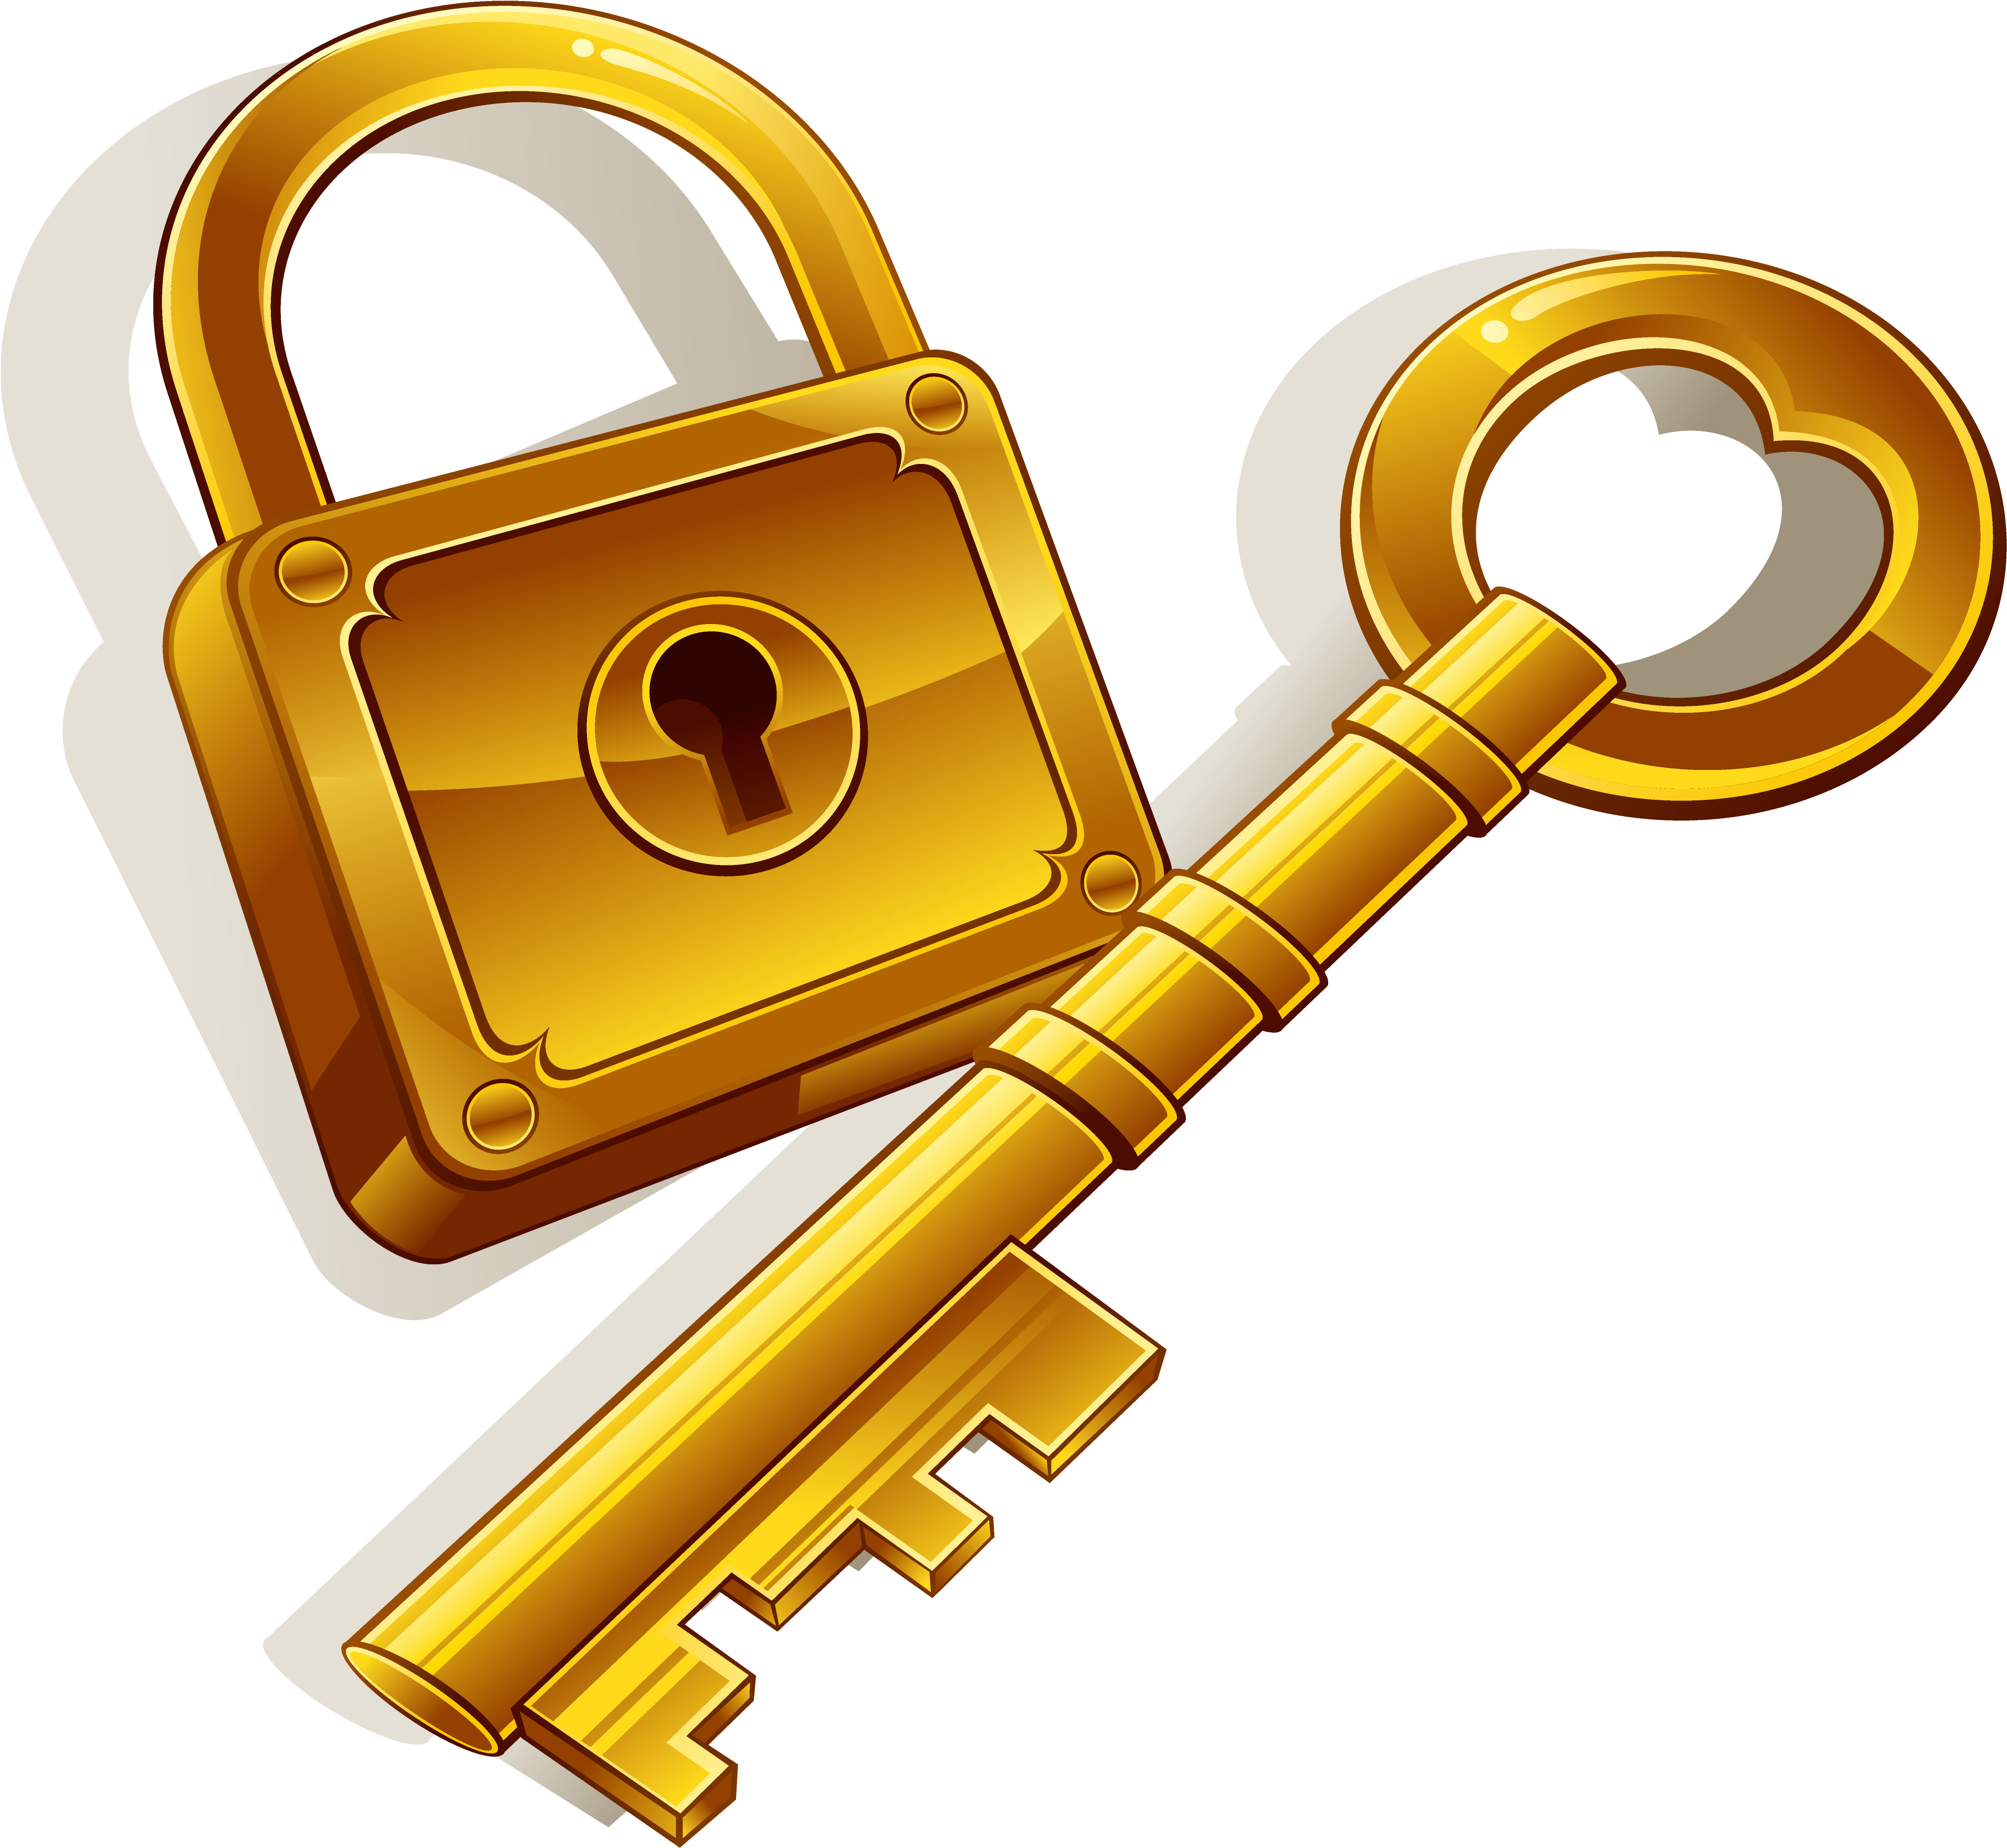 gold keyhole clipart - 900×840